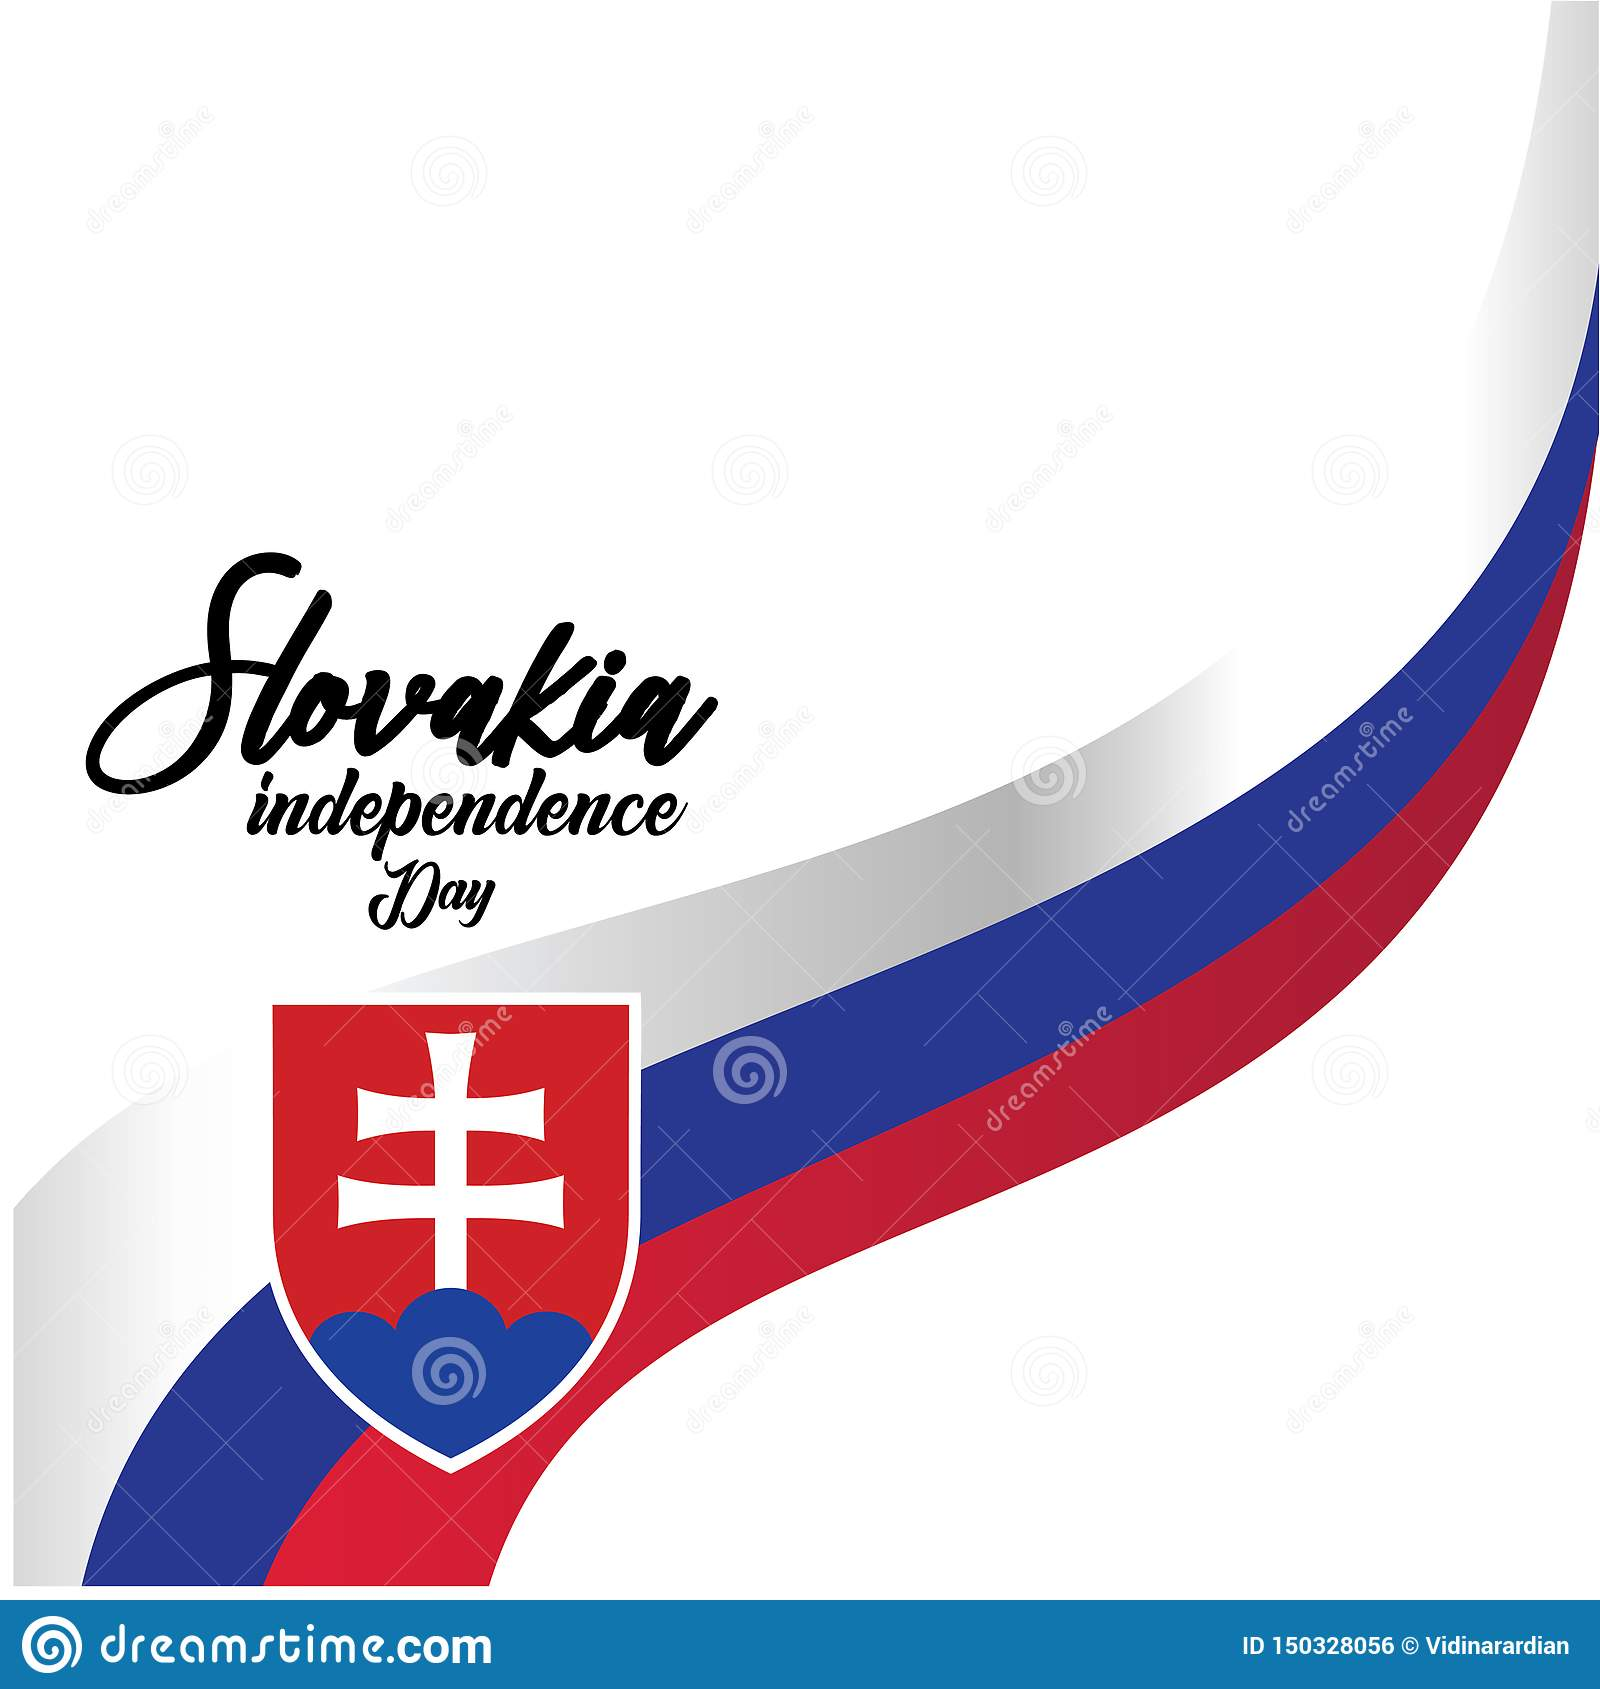 Slovakia Independence Day Vector Template Design Illustration - Vector